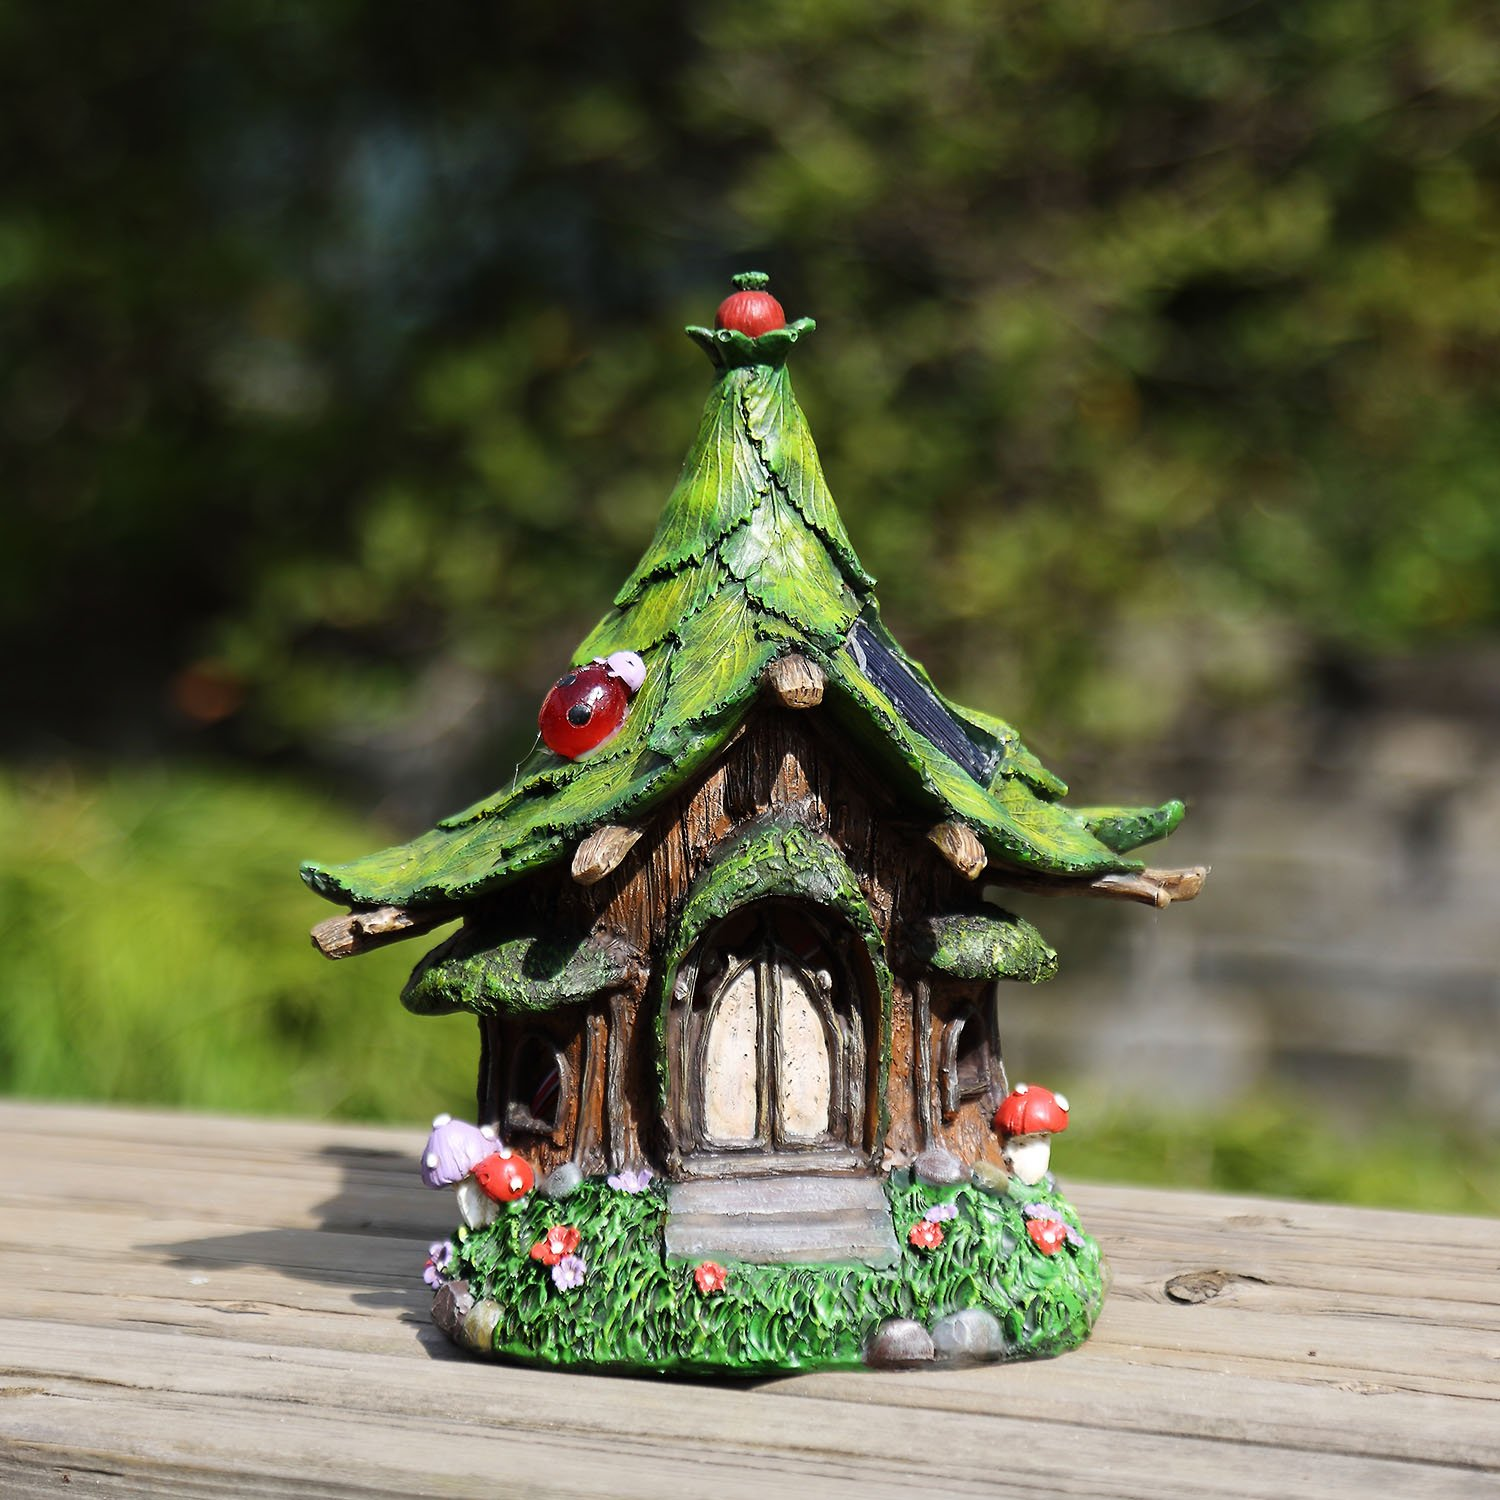 Ivy Home Outdoor Tree Hanging Fairy House with Solar Light,Green